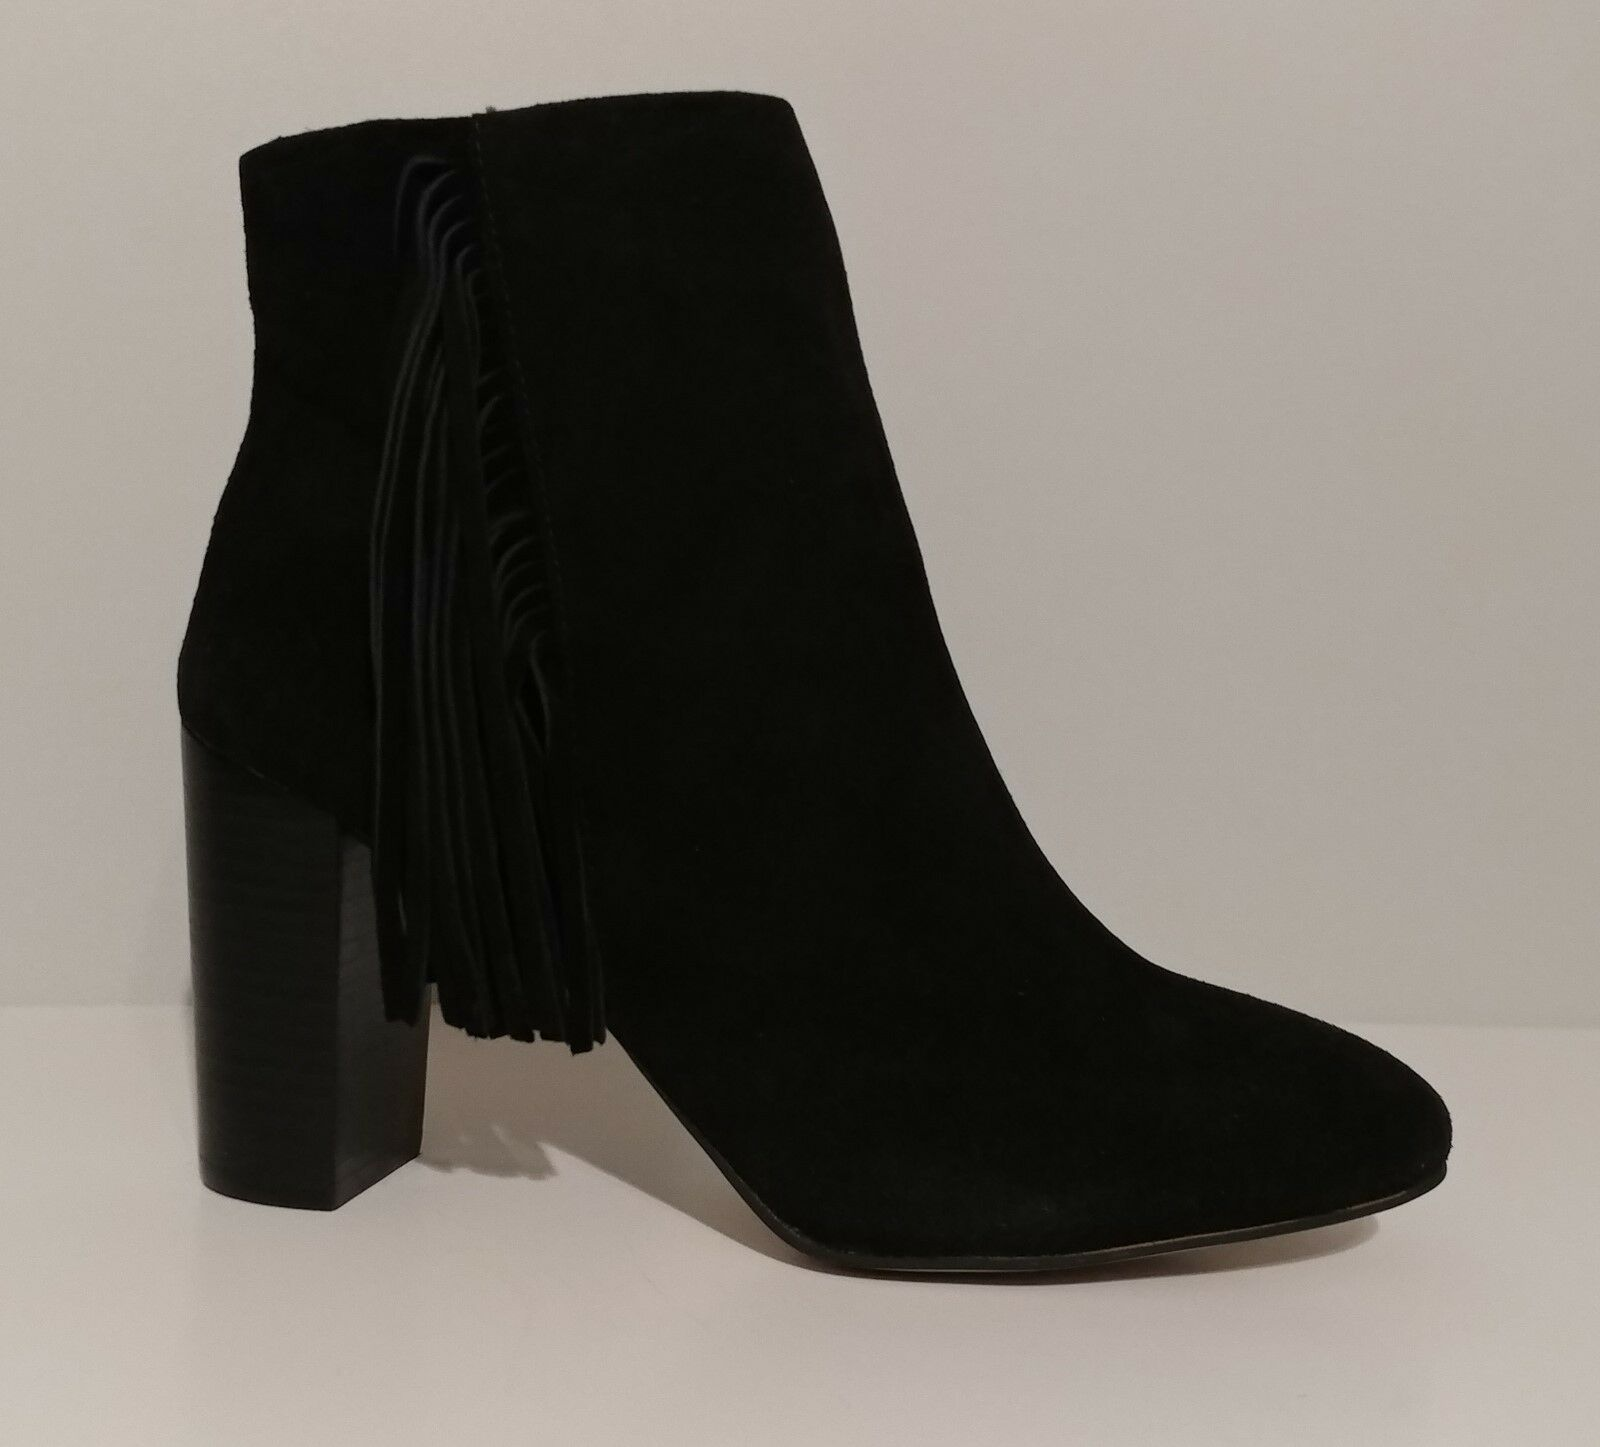 Jessica Simpson Womens Ebyy Blk/Suede/Stacked Heel M Jessica Simpson 7TT69E5DBS